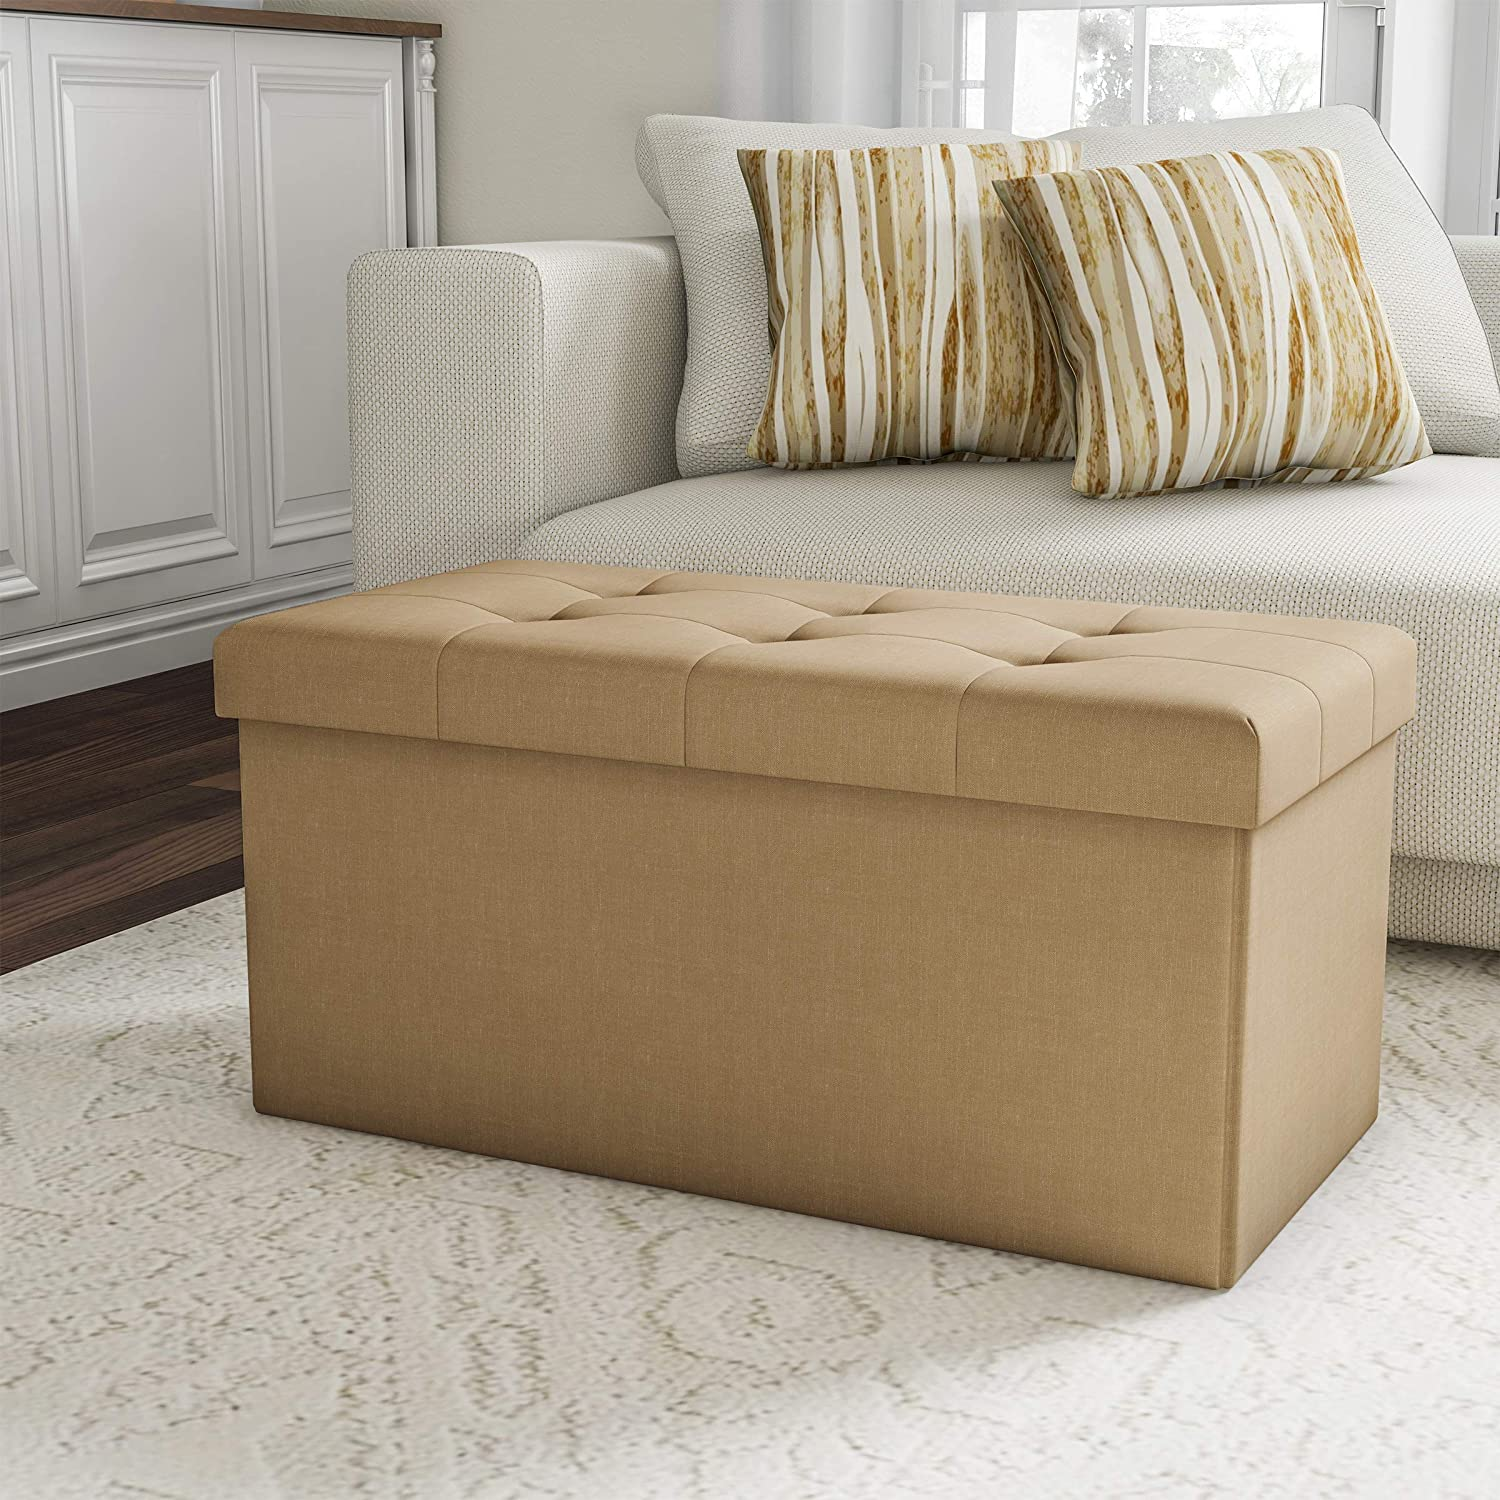 "Lavish Home Folding Storage Bench Ottoman– 30"" Tufted Foam Padded Lid, Beige"